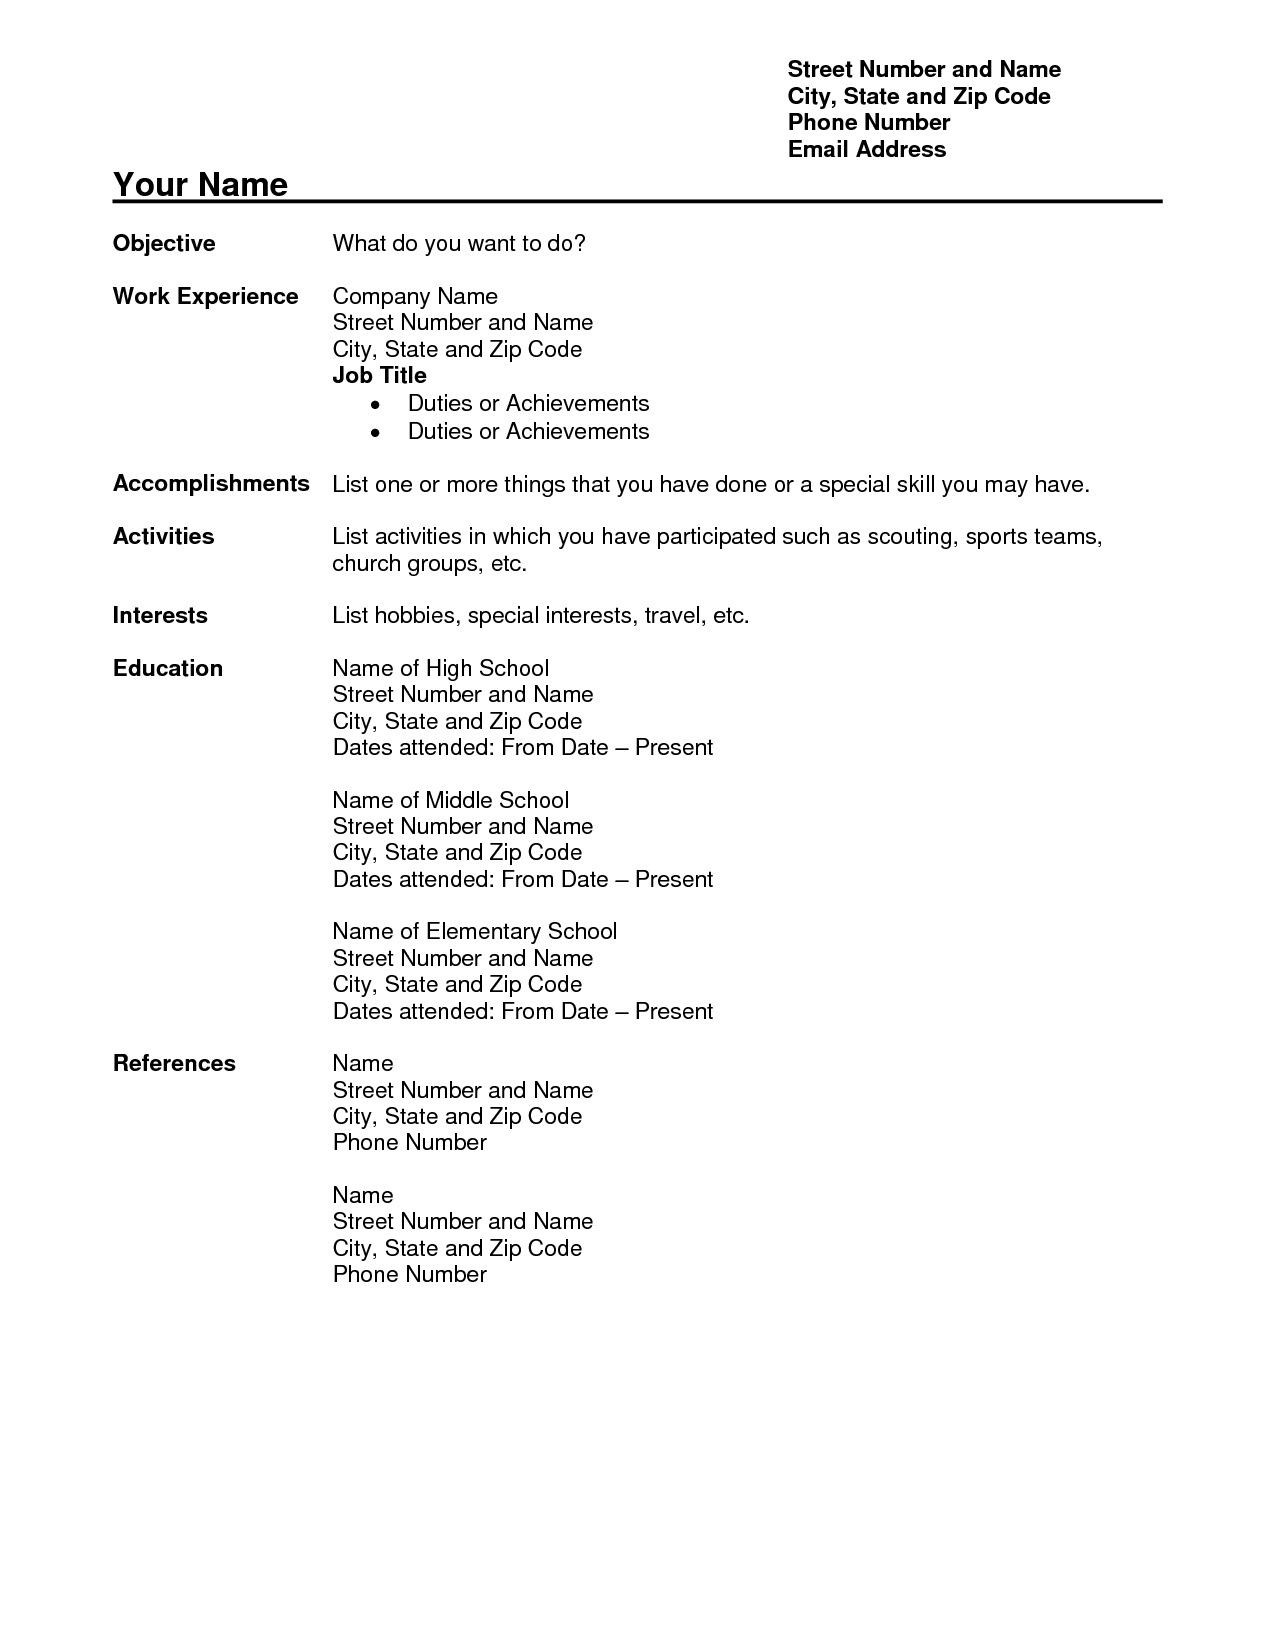 free teacher resume templates download free teacher resume templates download free teacher resume templates microsoft - Free Resume Templates Downloads Word